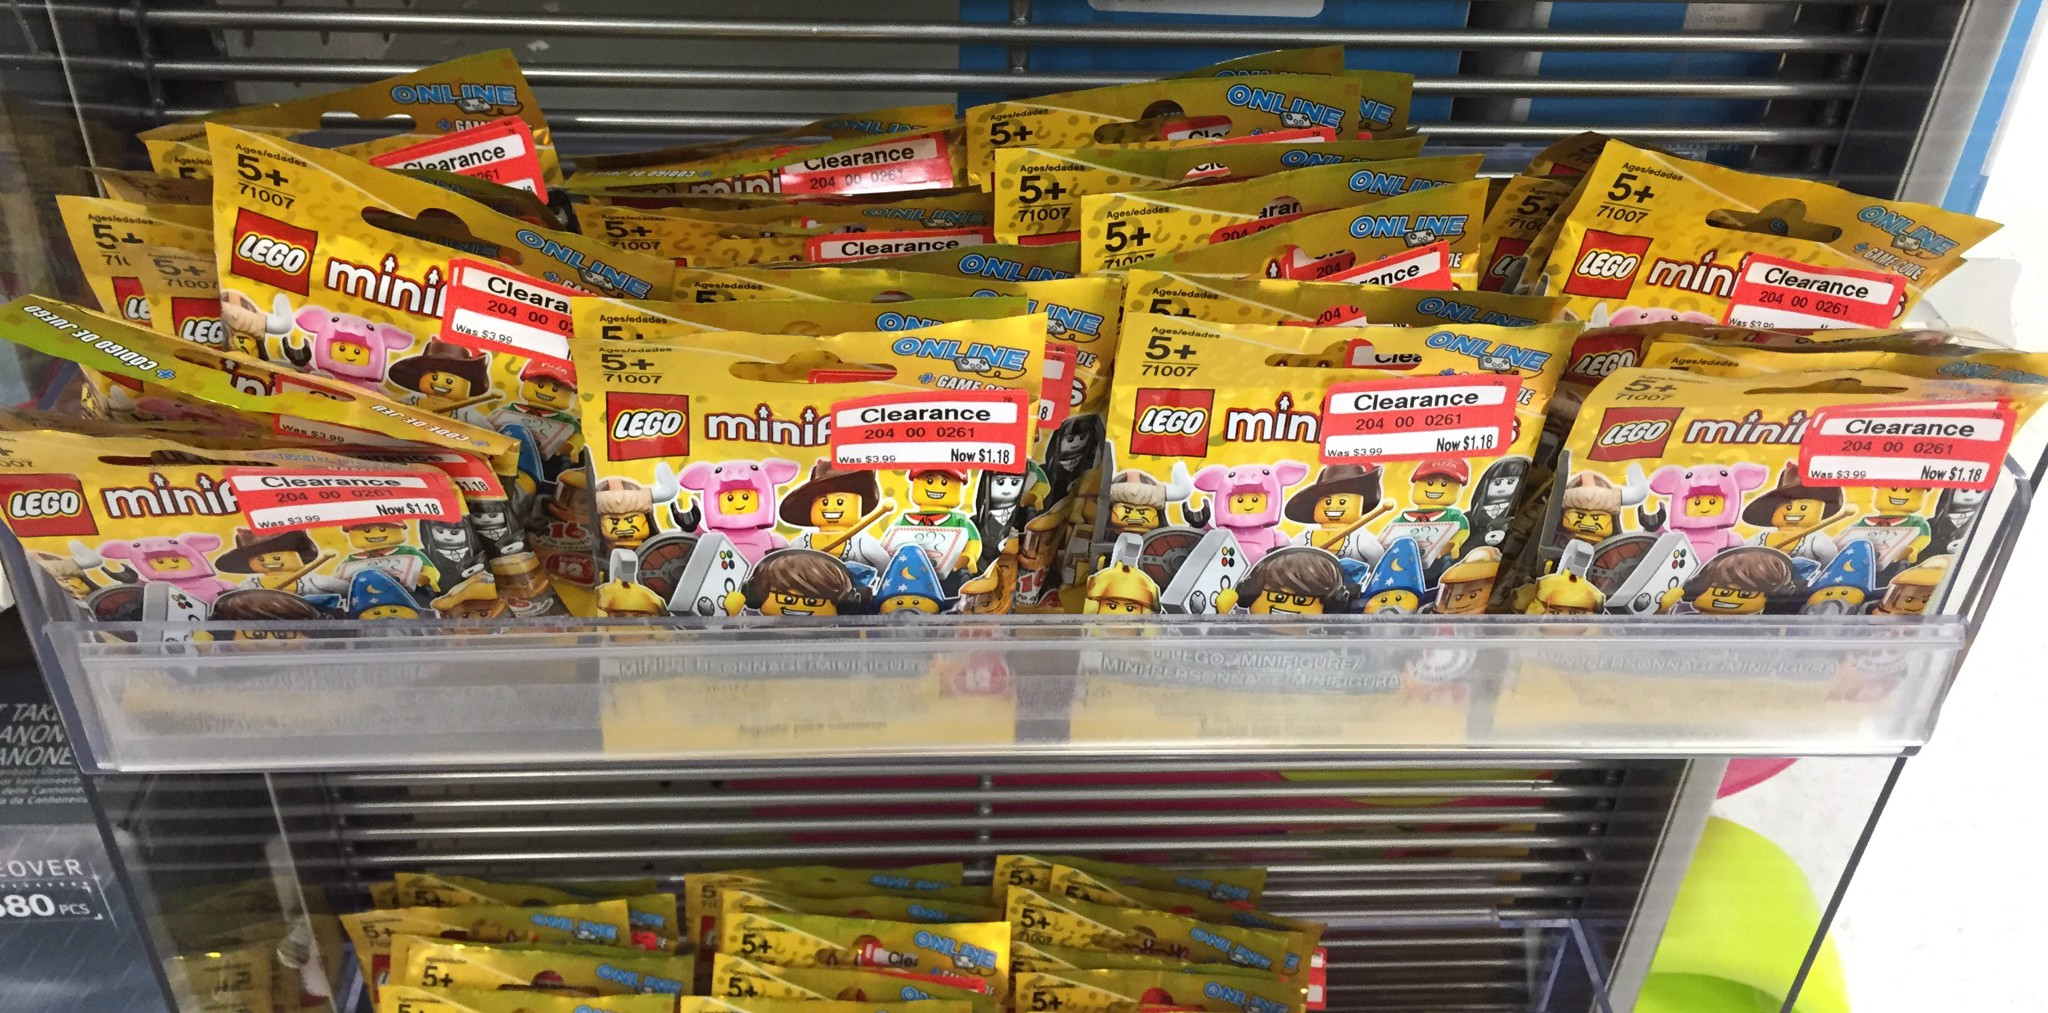 Lego minifigures series 12 71007 clearance sale 1 each for Lago store outlet